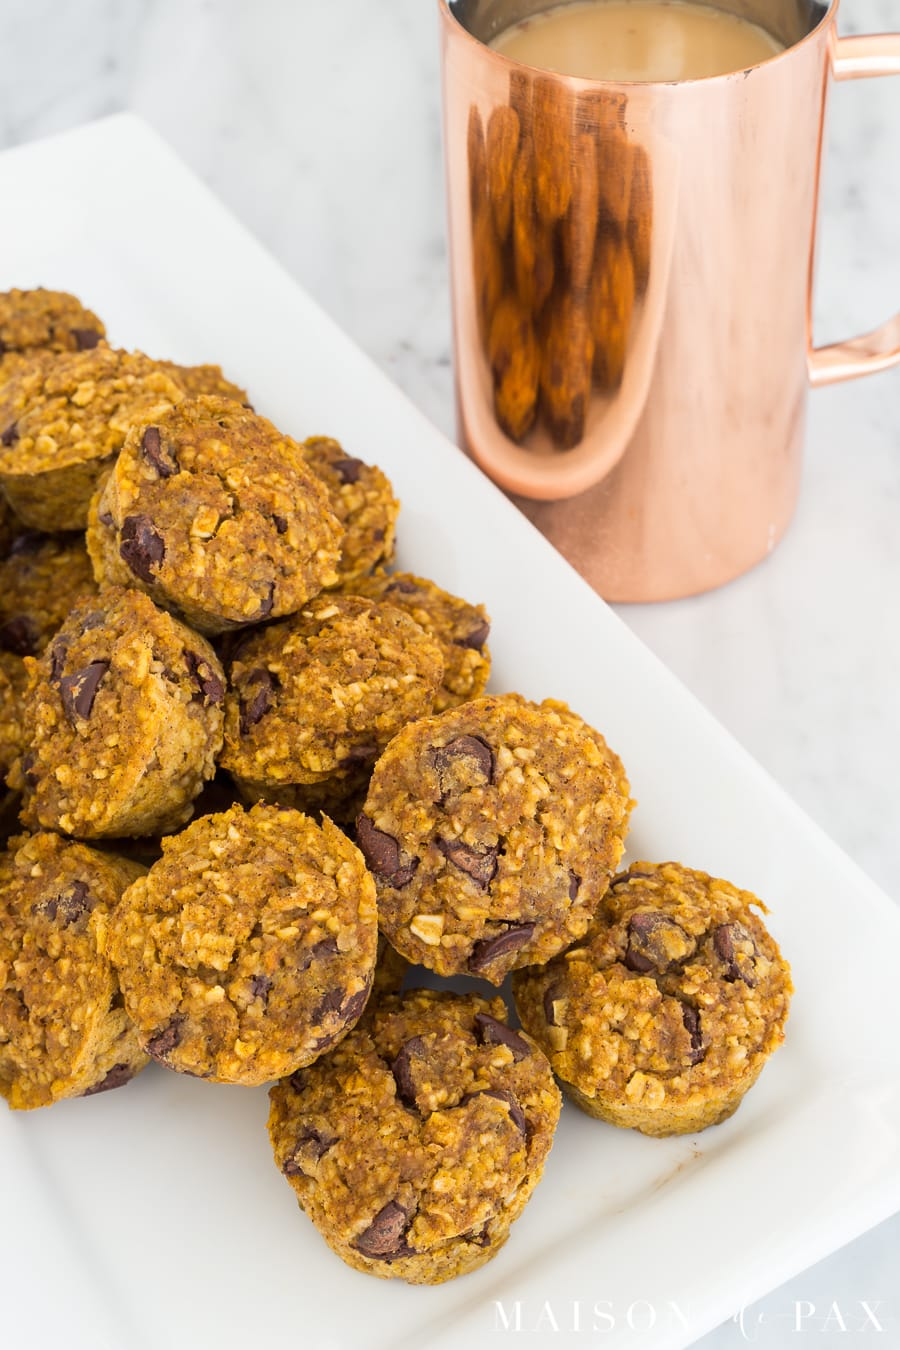 Gluten free pumpkin mini muffins: Made with applesauce and a touch of maple syrup for sweetening, oat flour, and pumpkin, these are packed with delicious flavor and nutritious ingredients #gf #glutenfree #pumpkinspice #fallrecipe #pumpkinrecipe #pumpkinmuffins #breakfast #gfbreakfast